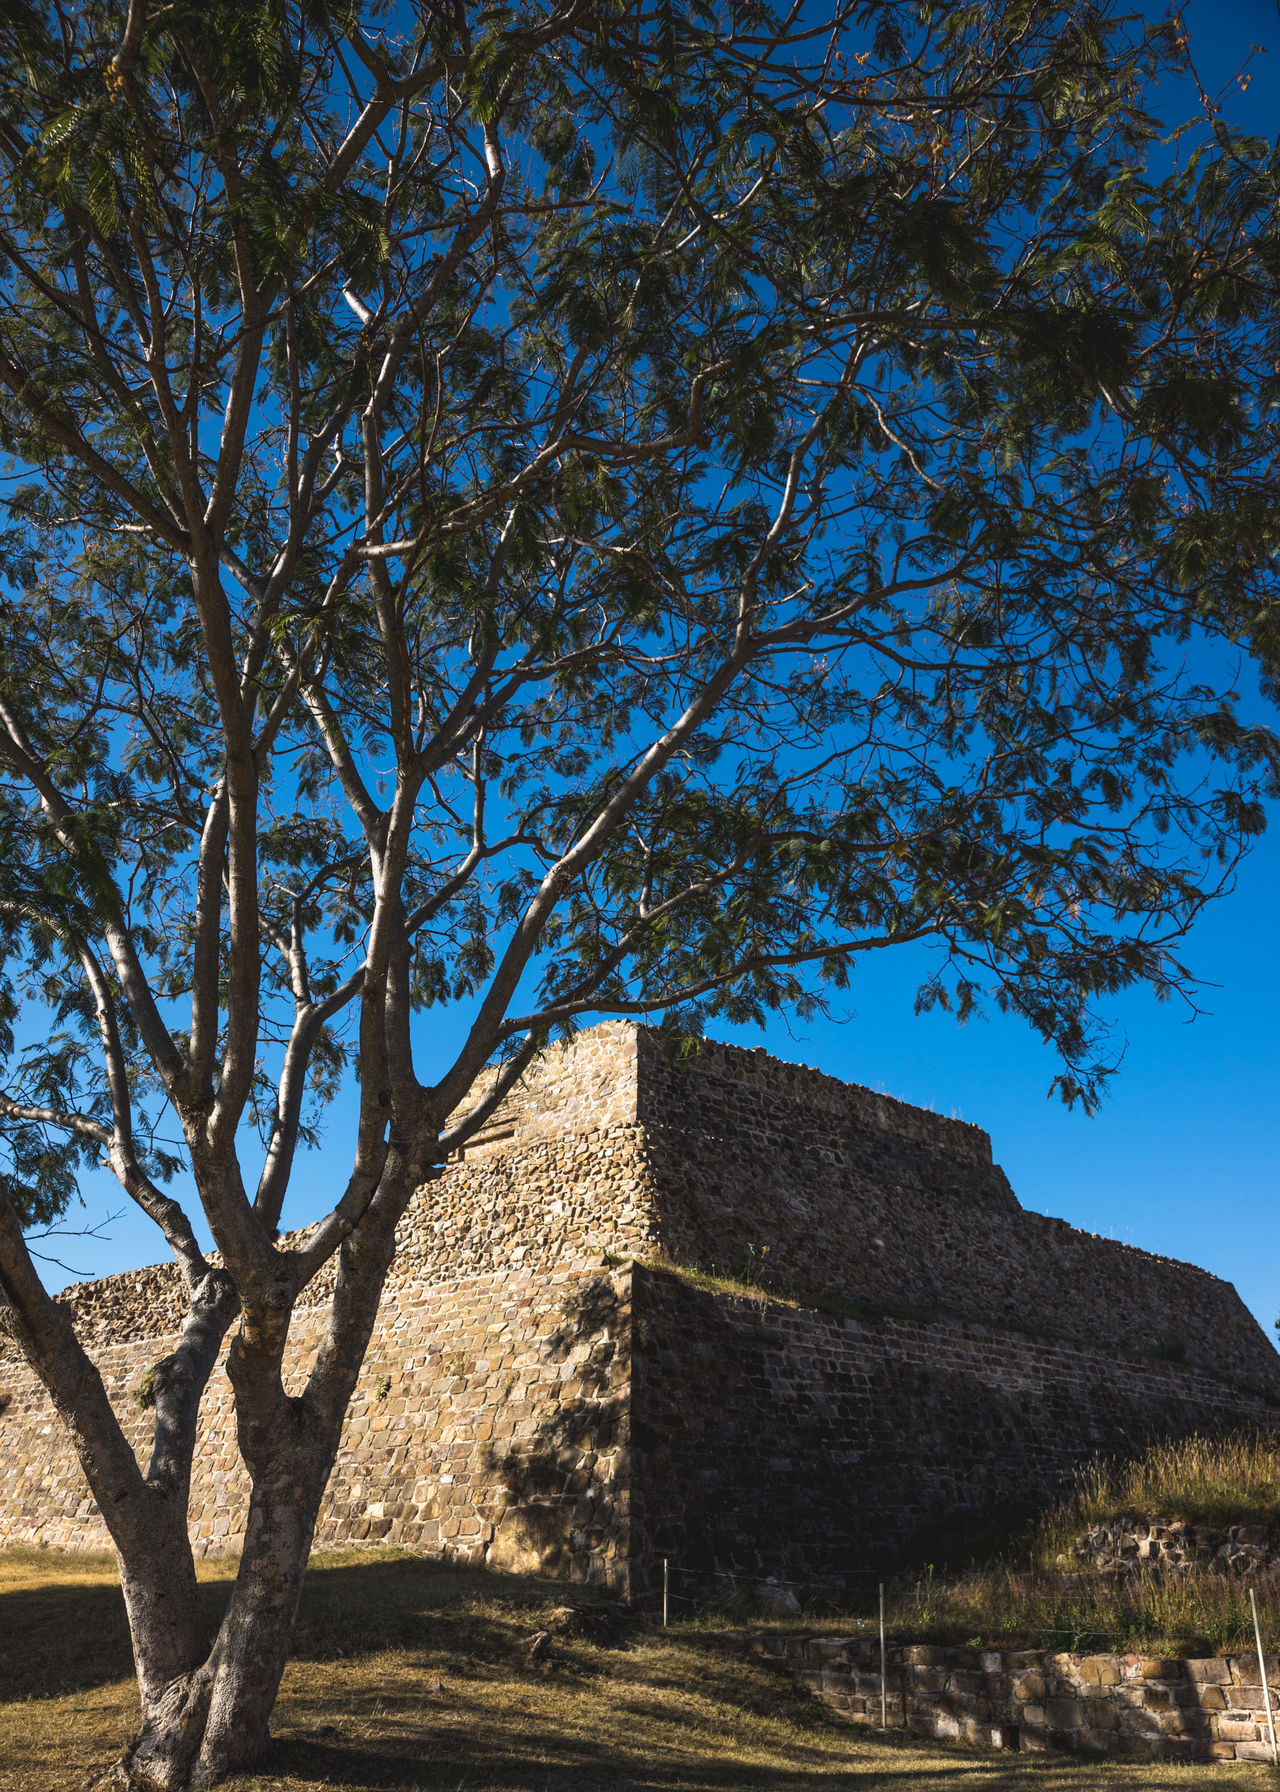 Ancient Ancient Architecture Ancient Civilization Ancient Ruins Archeology Architecture Architecture Art Blue Cosmos Culture Day History Landscape_photography Mexico Mexico_maravilloso Monte Alban Nature Nature No People Outdoors Prehispanic Pyramid Sky Tree Neighborhood Map